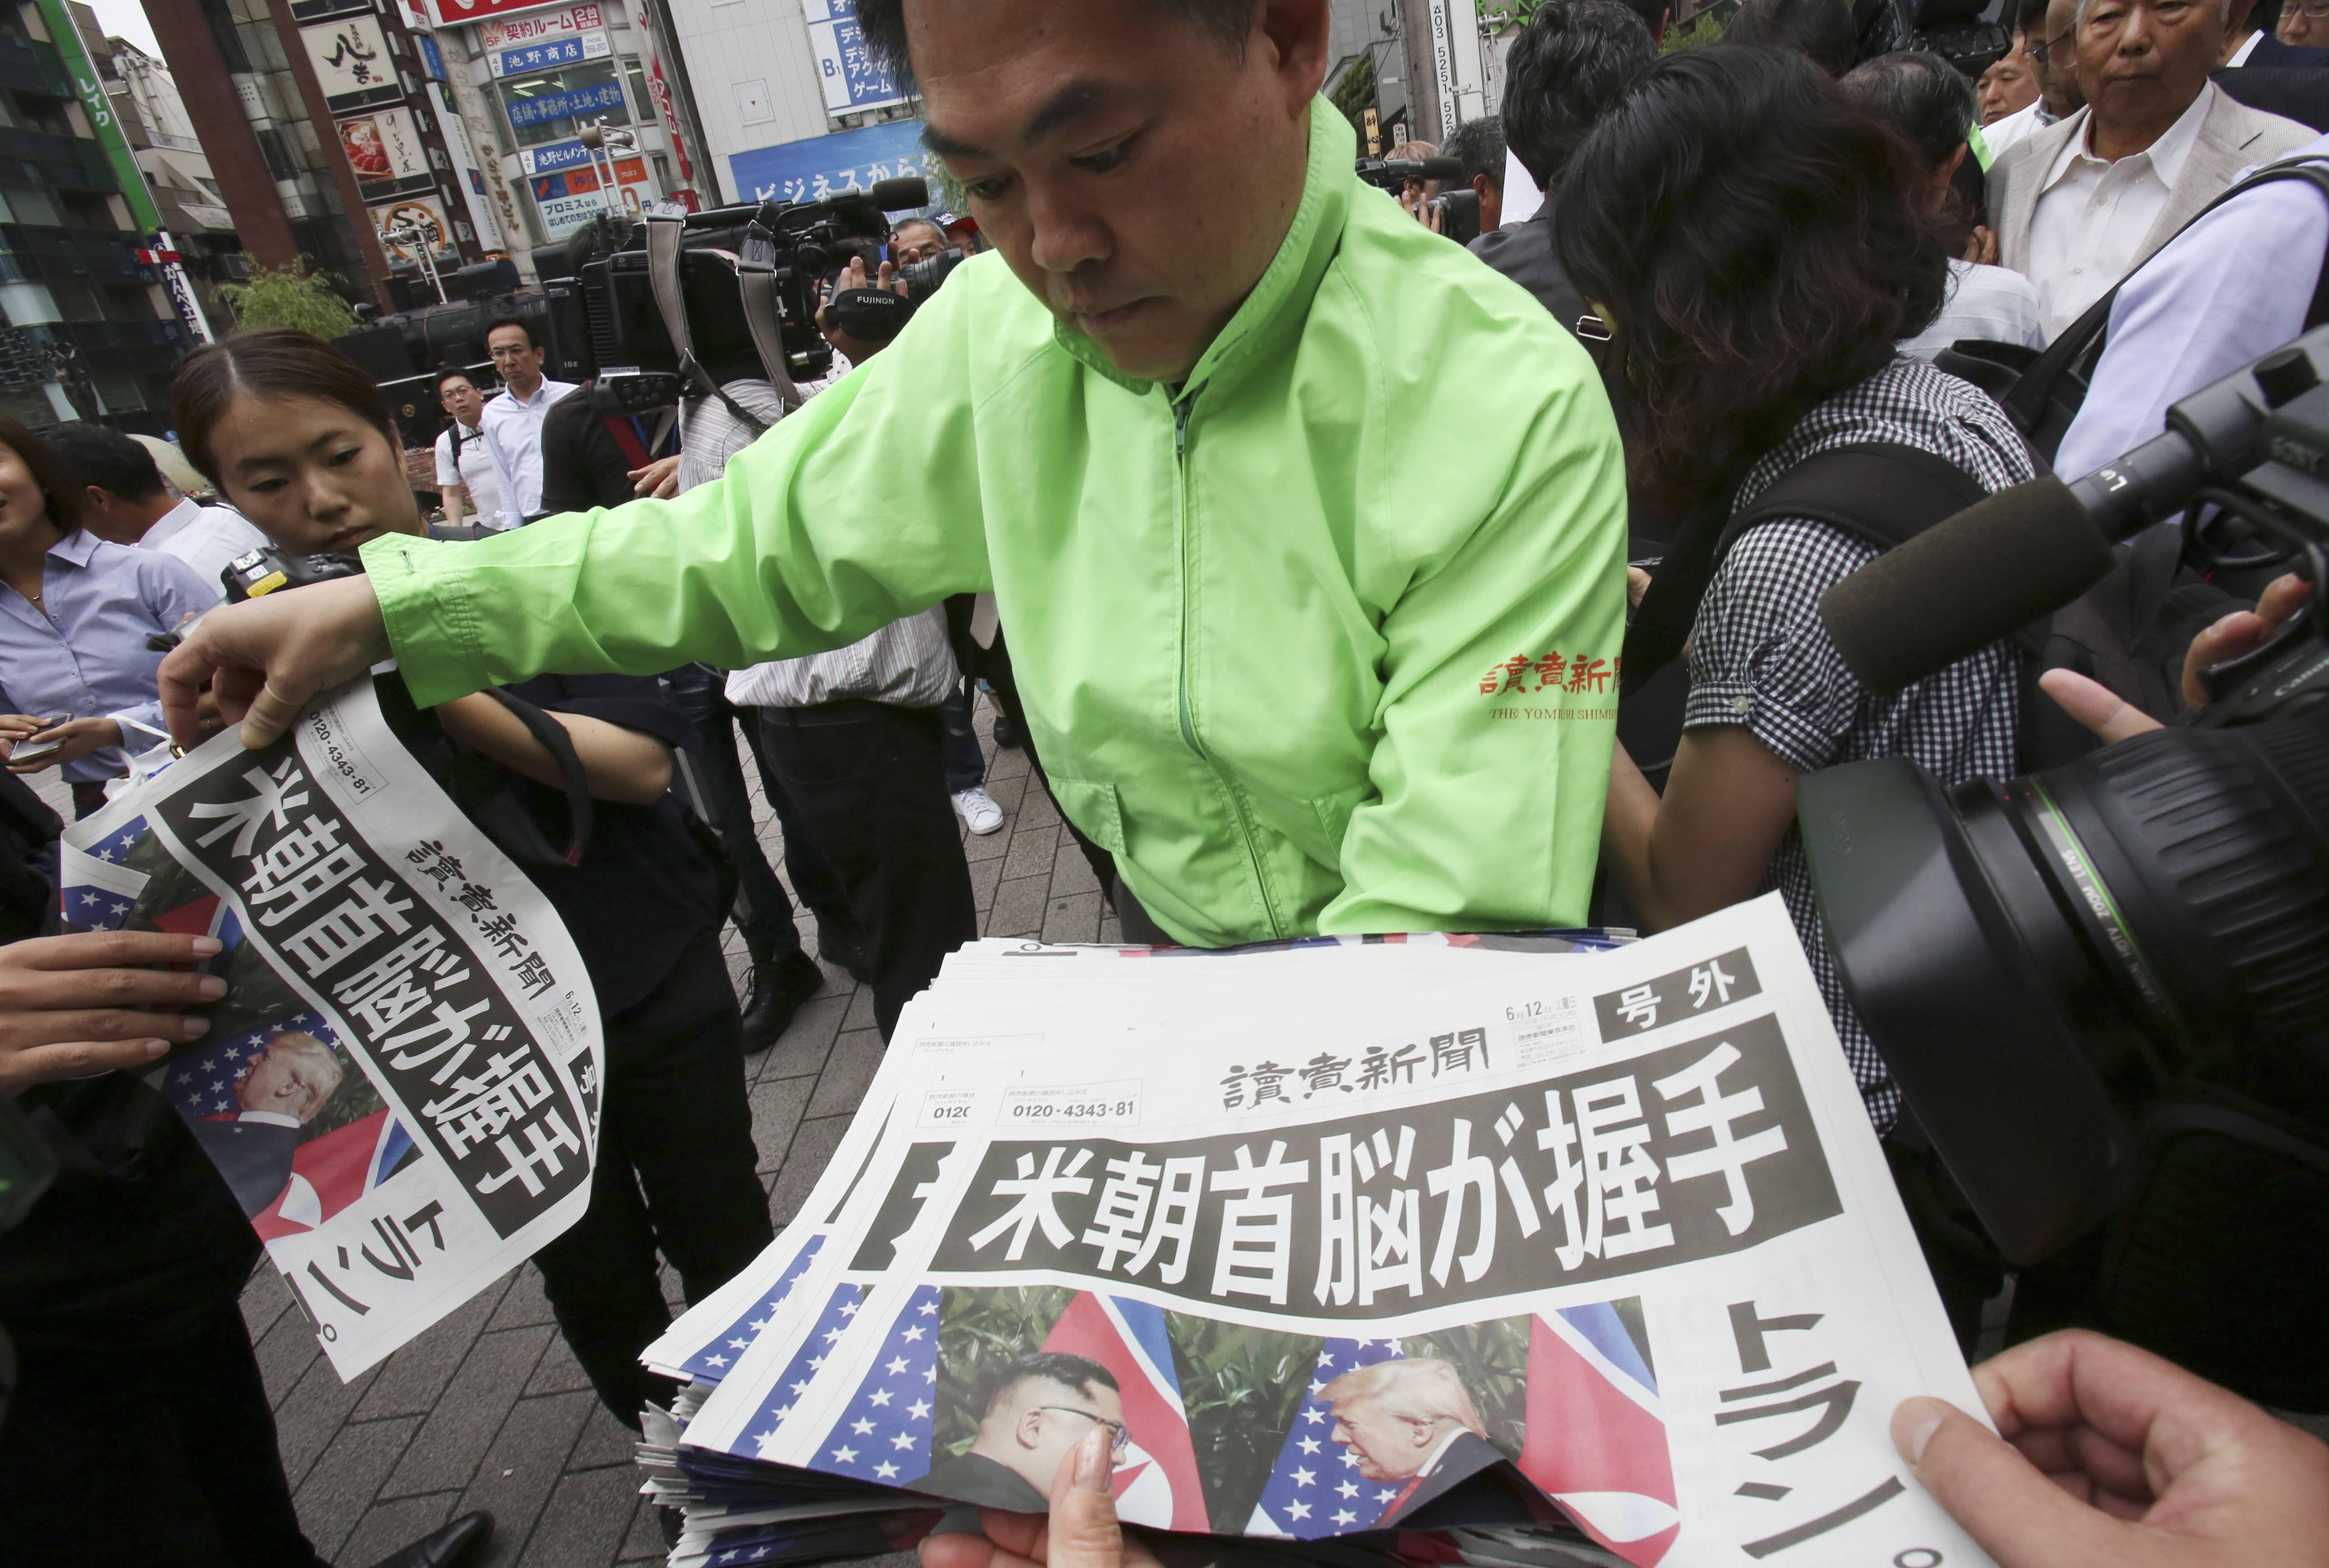 A staff of a Japanese news paper Yomiuri distributes an extra edition of the newspaper reporting about the summit between U.S. President Donald Trump and North Korean leader Kim Jong Un in Singapore, at Shimbashi Station in Tokyo, Tuesday.